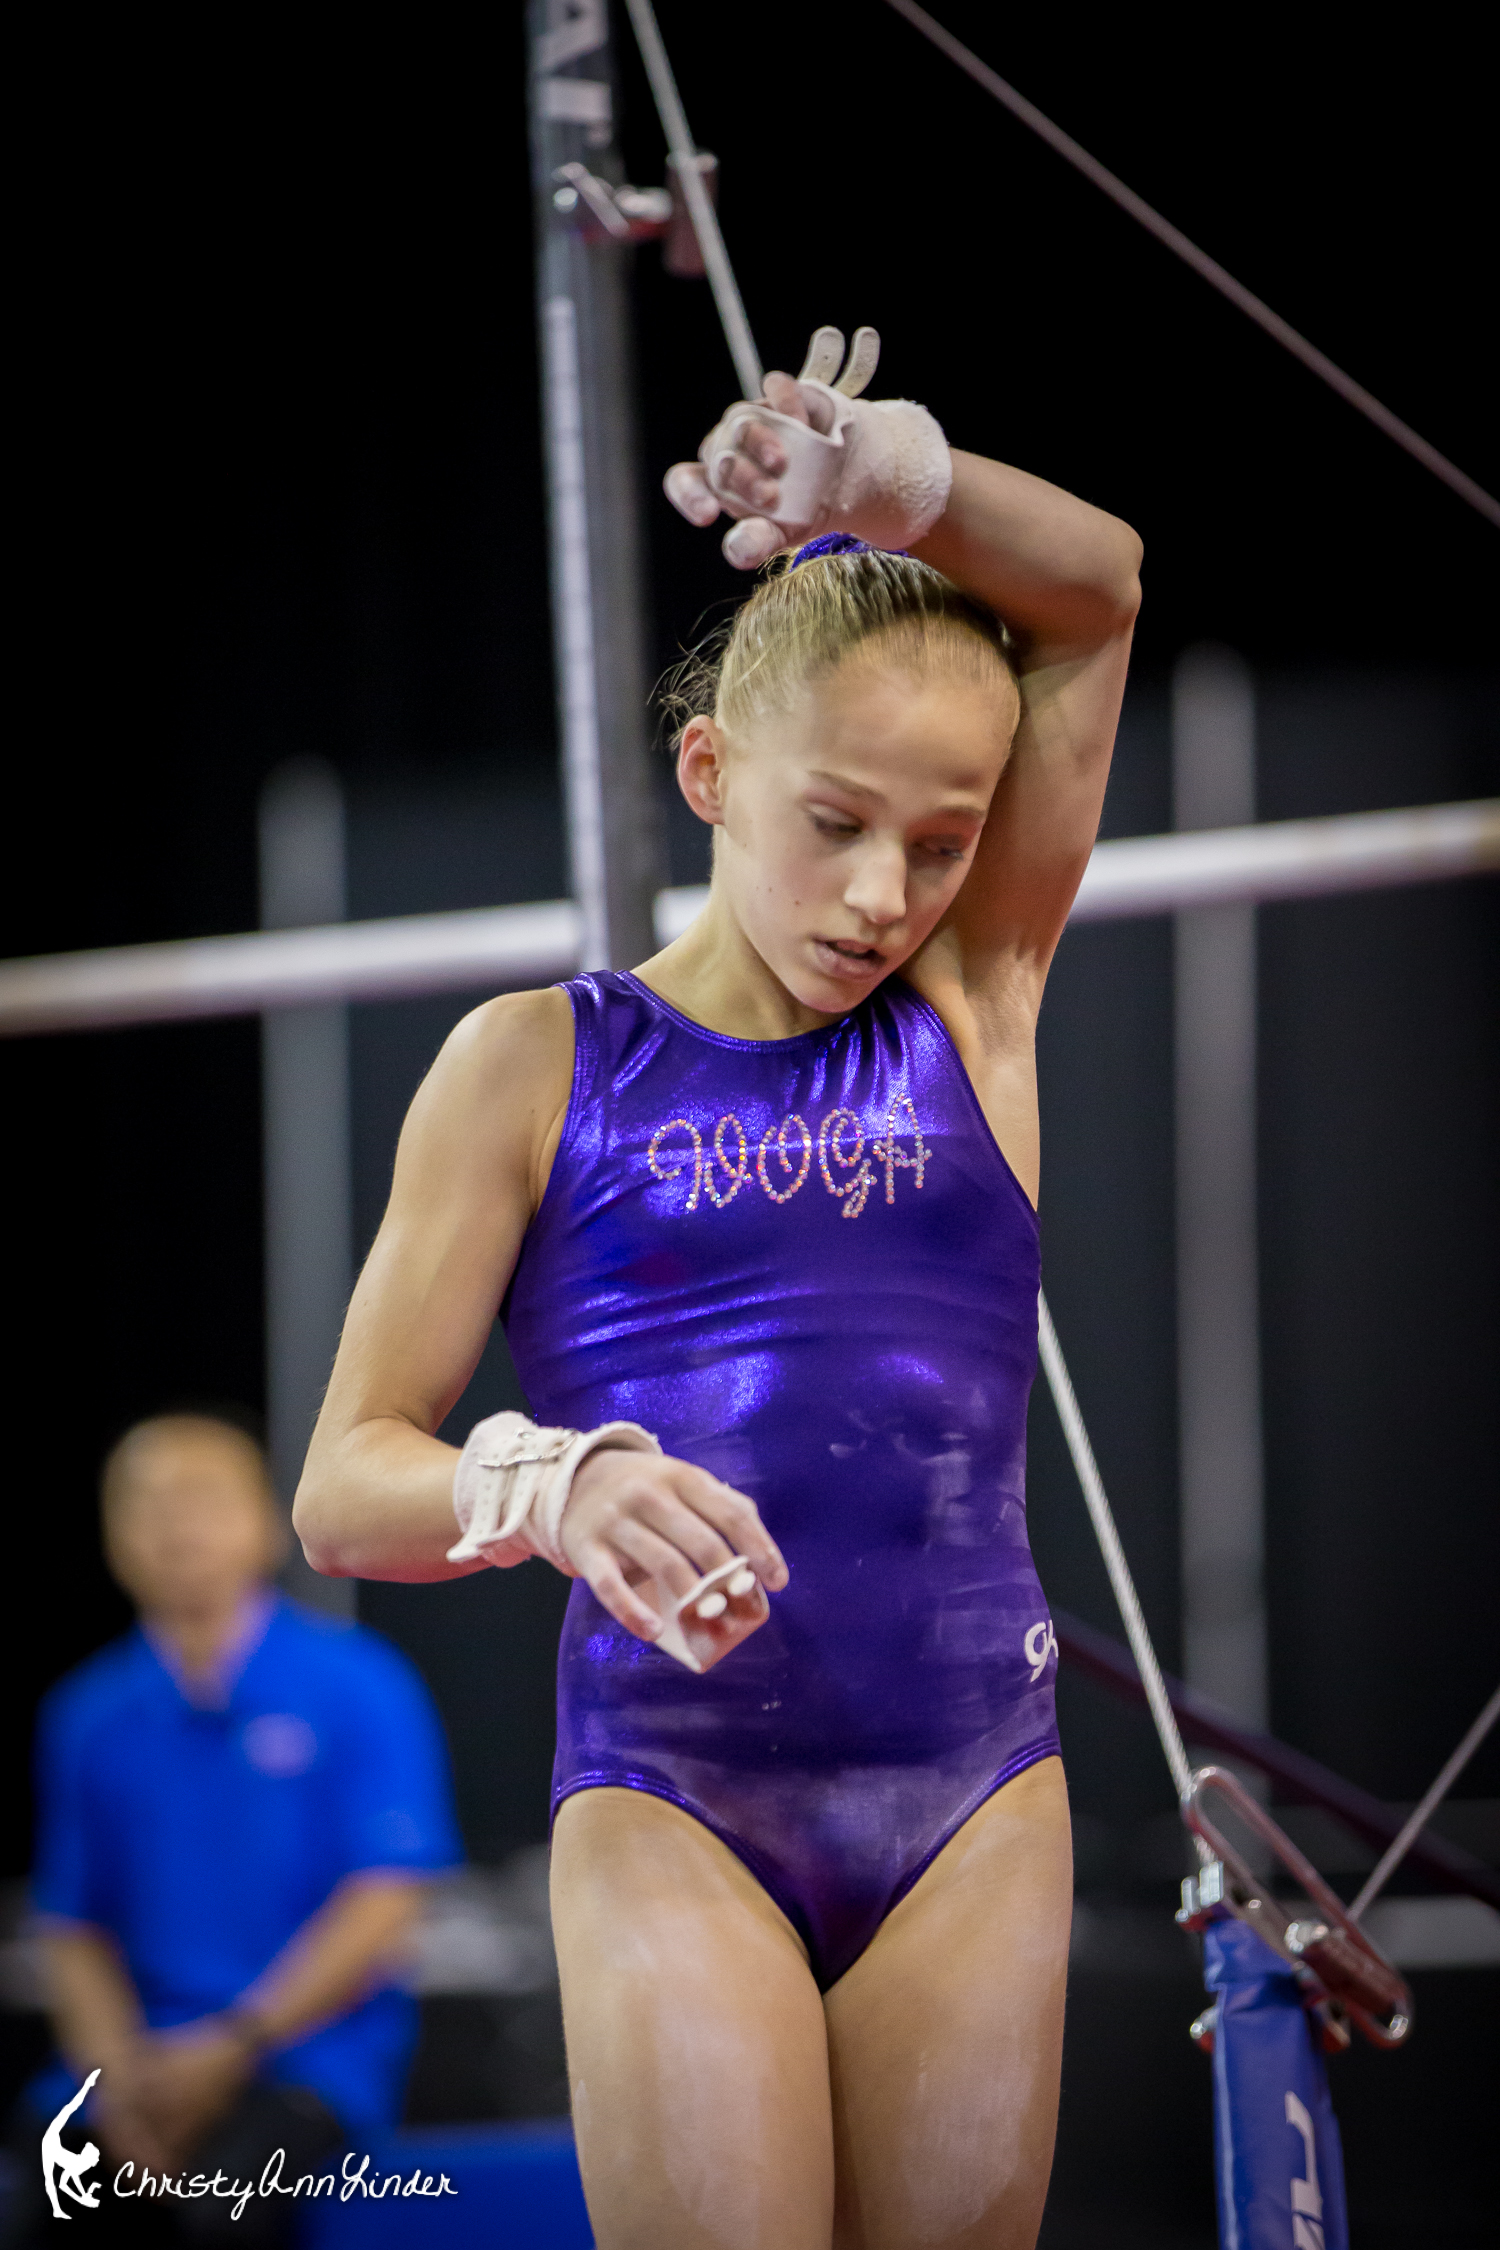 podium-training-secret-classic-17jpg